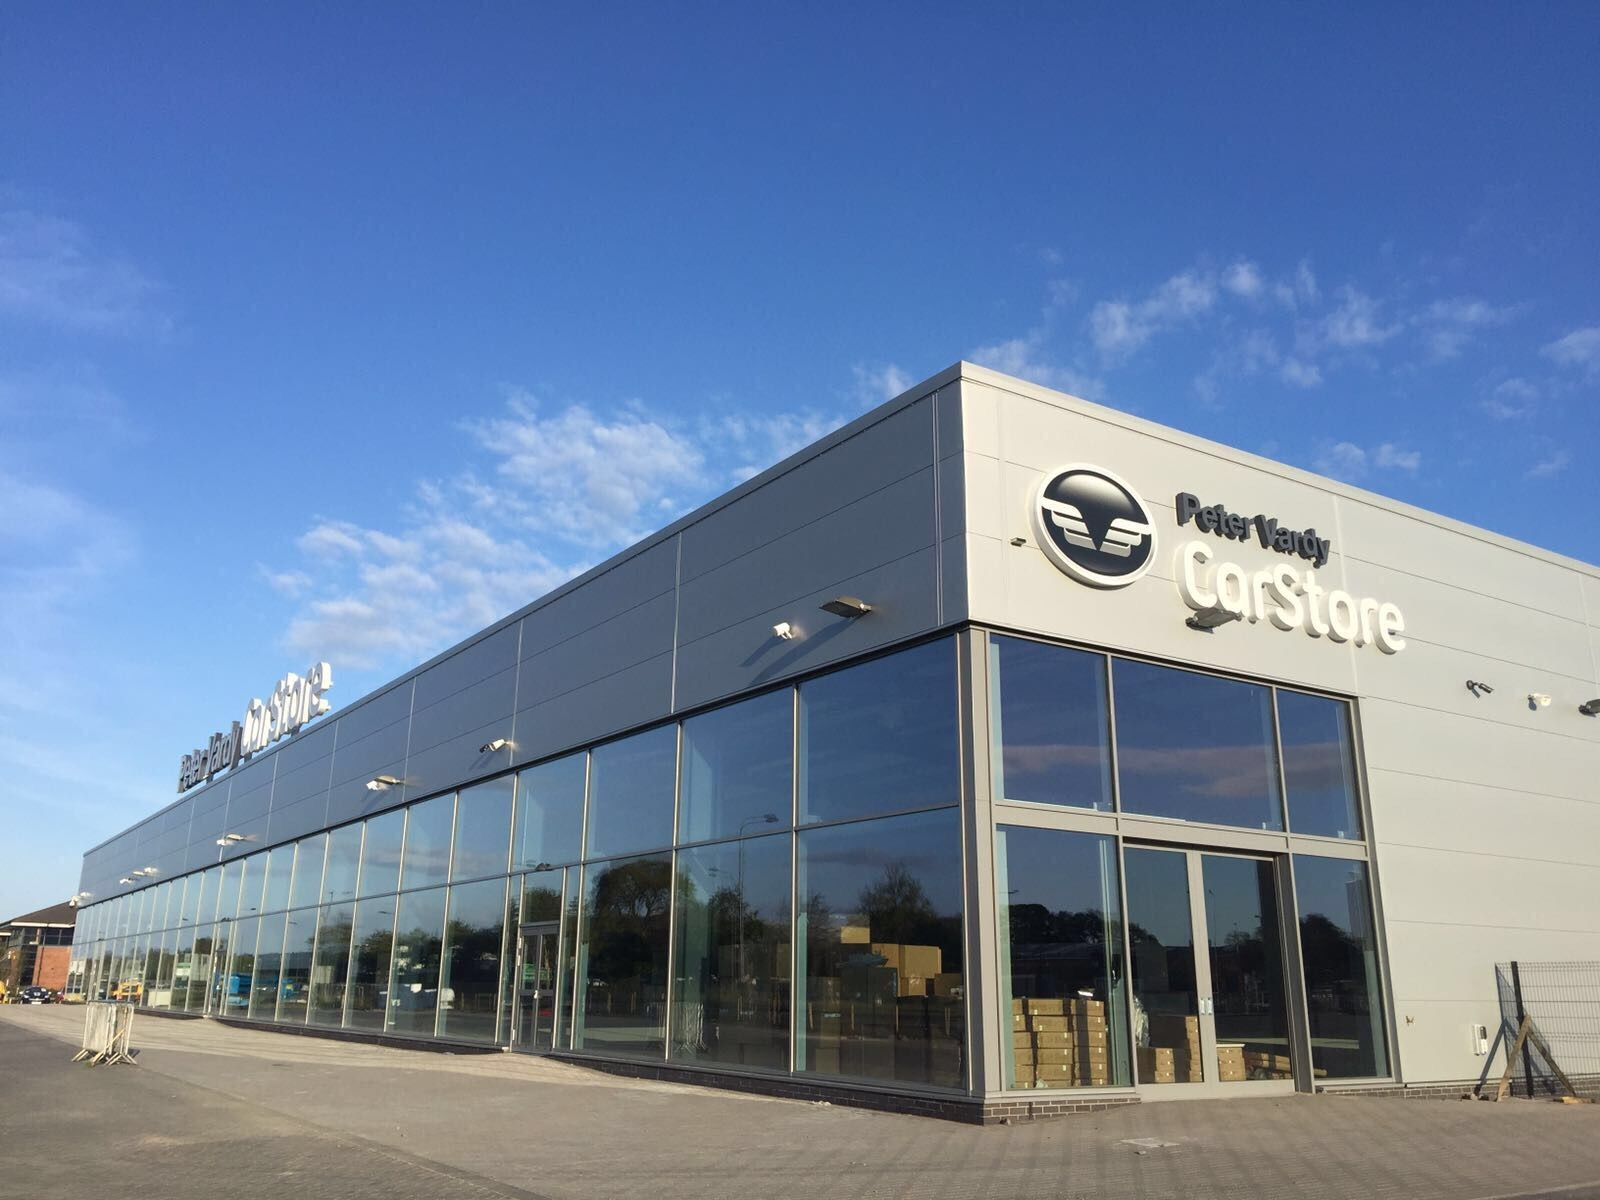 The new Peter Vadry CarStore that opens on Saturday.